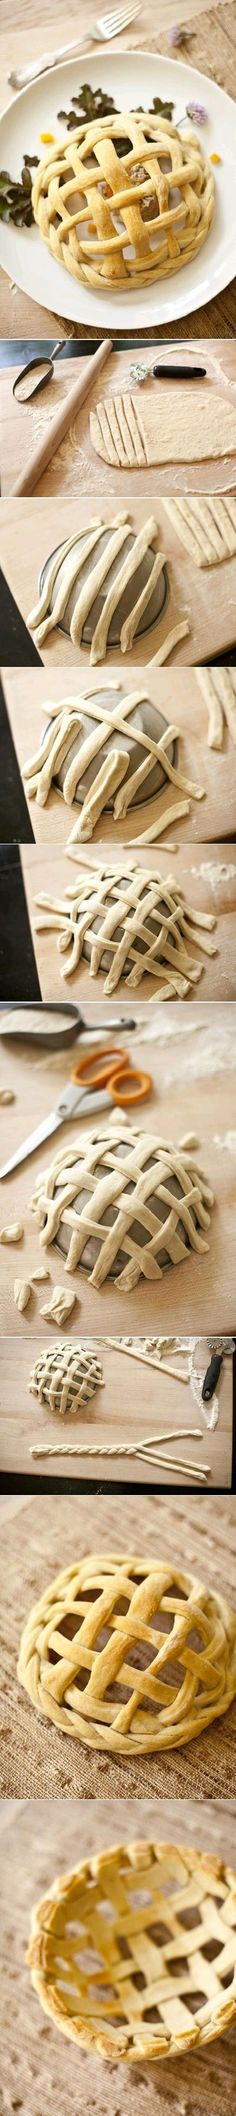 DIY Tasty Basket